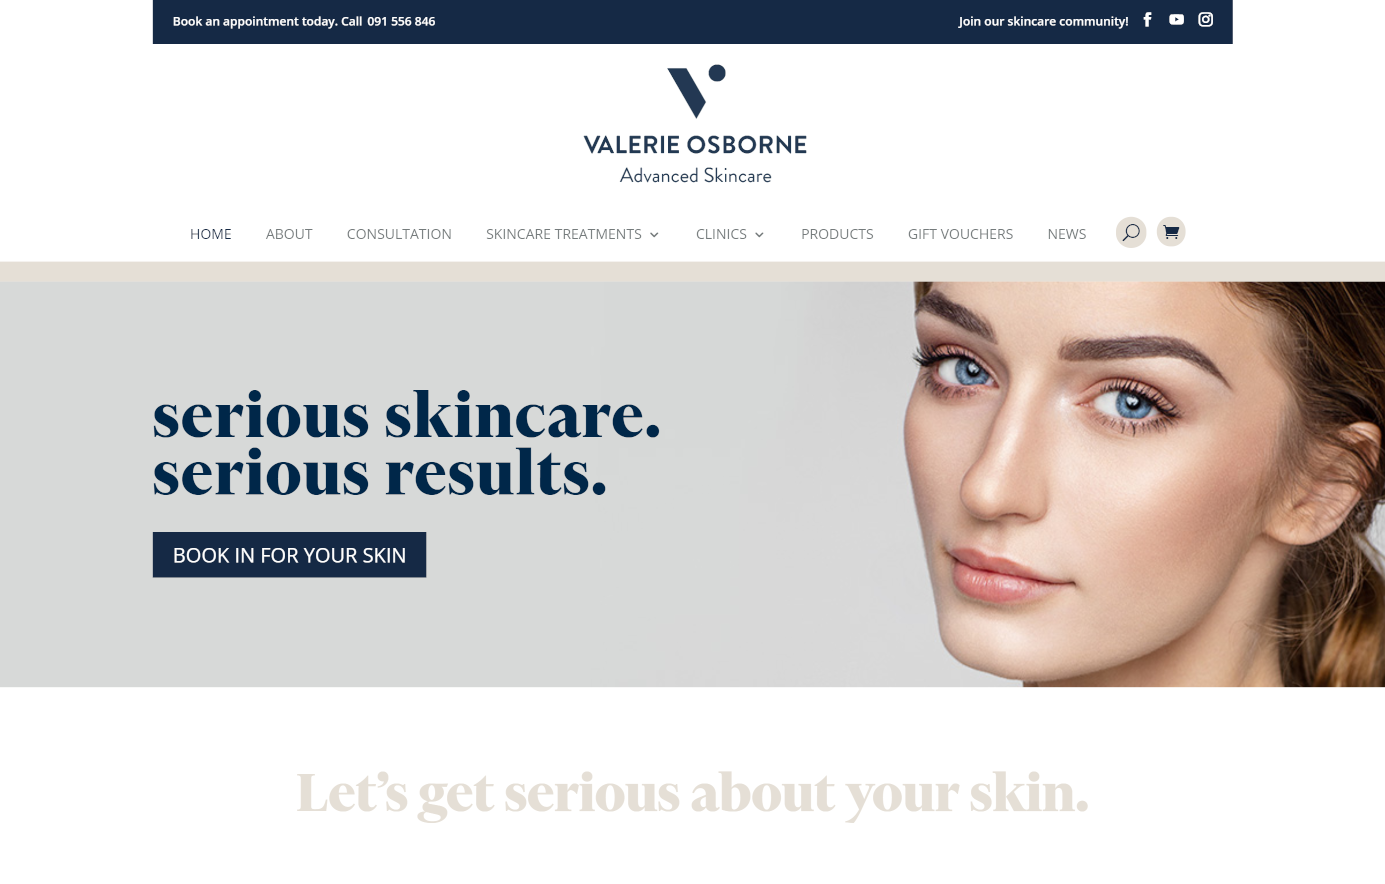 Valerie-Osborne-Skincare-Website-Design-Featured-Poppyvine-Web-Design